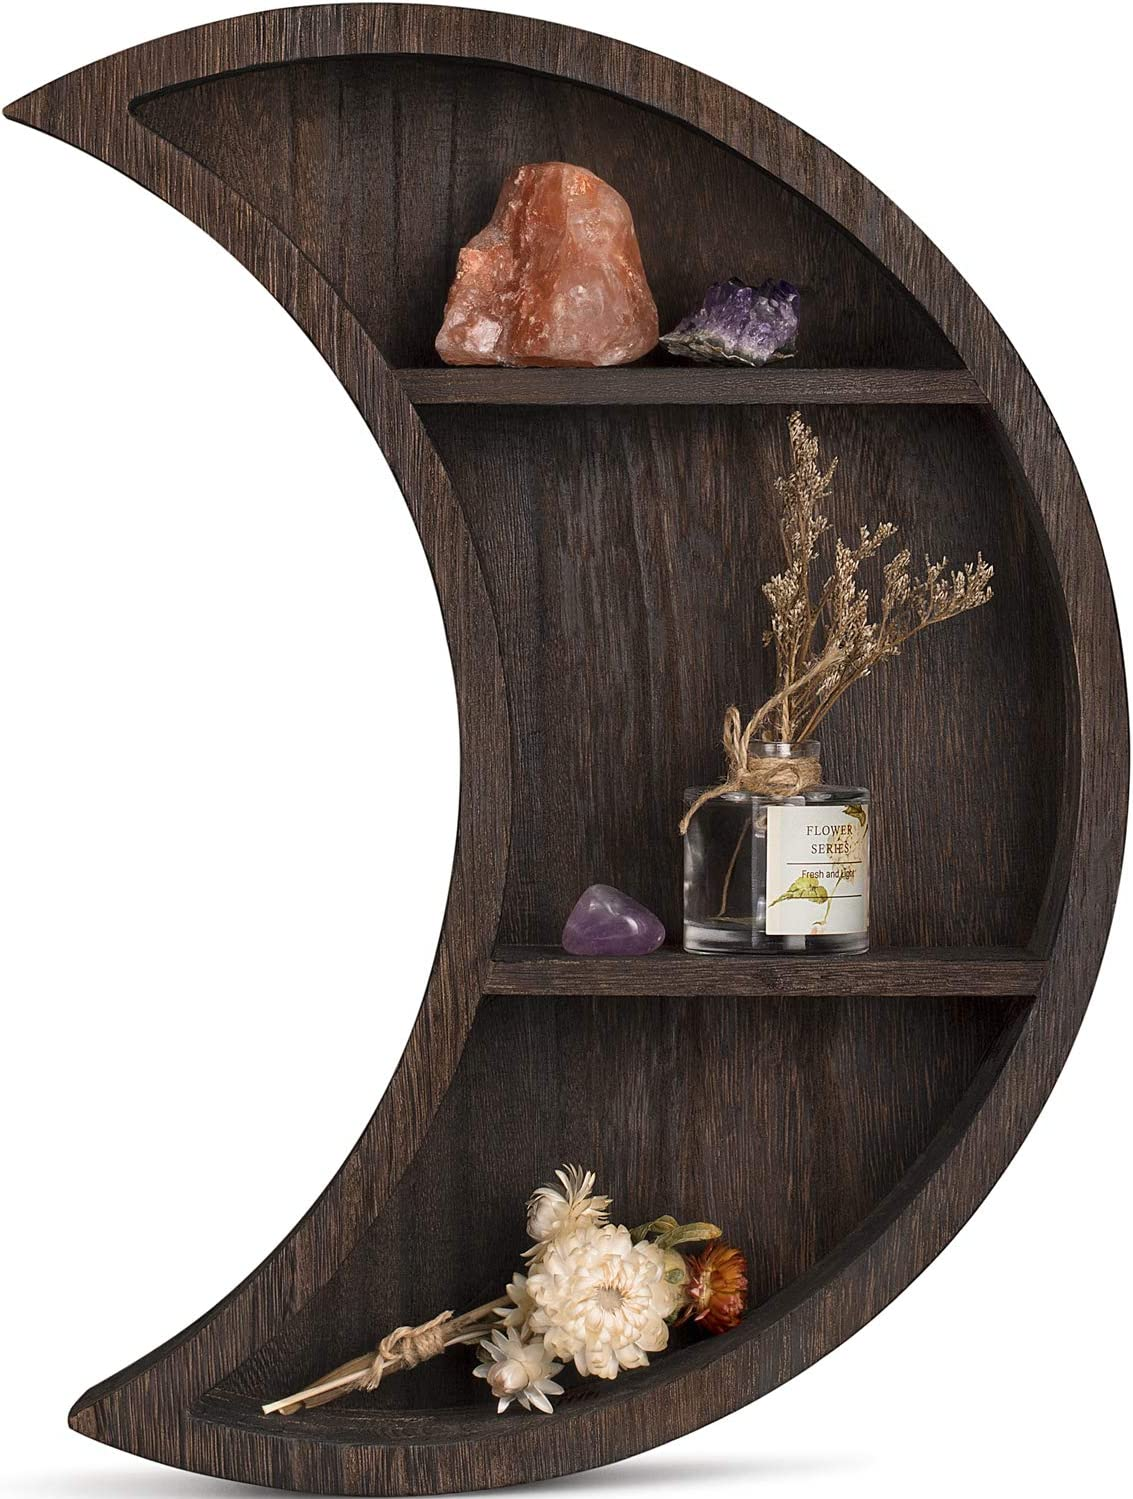 Dahey Wall Mounted Moon Shelf Wooden Floating Shelves Hanging Storage Display Shelf Home Wall Decor for Living Room Bedroom Bathroom Kitchen